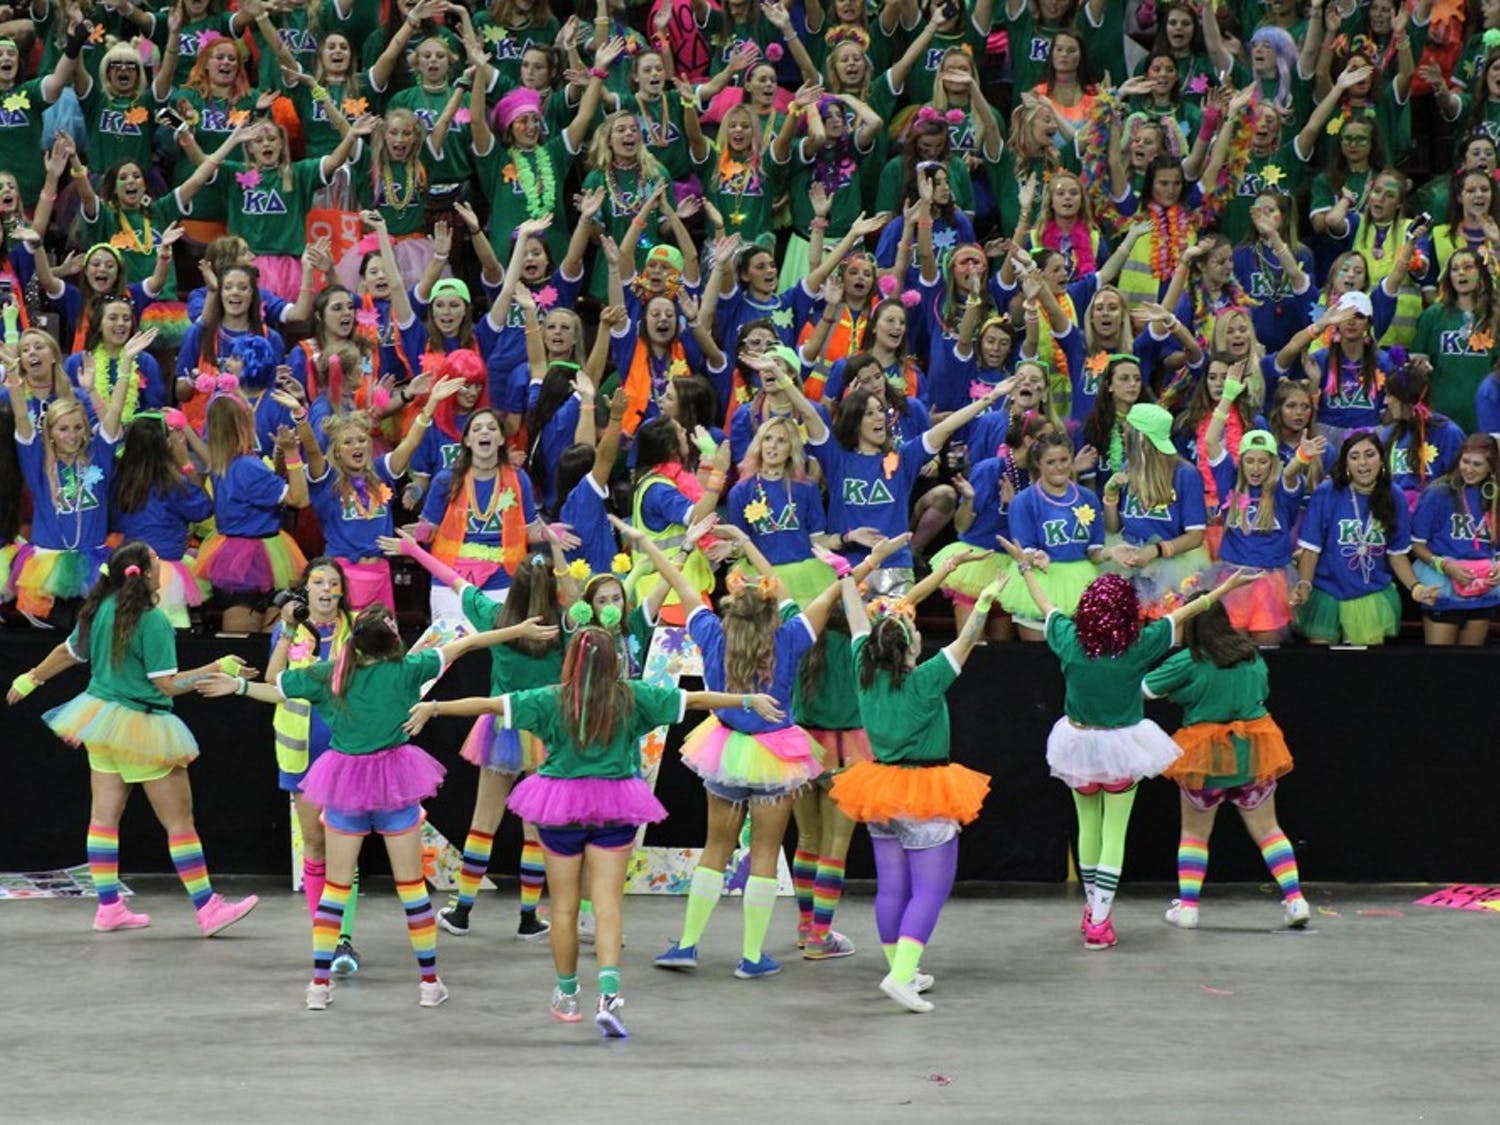 Kappa Delta gets excited to welcome the new pledge class into its sorority on Bid Day 2017.